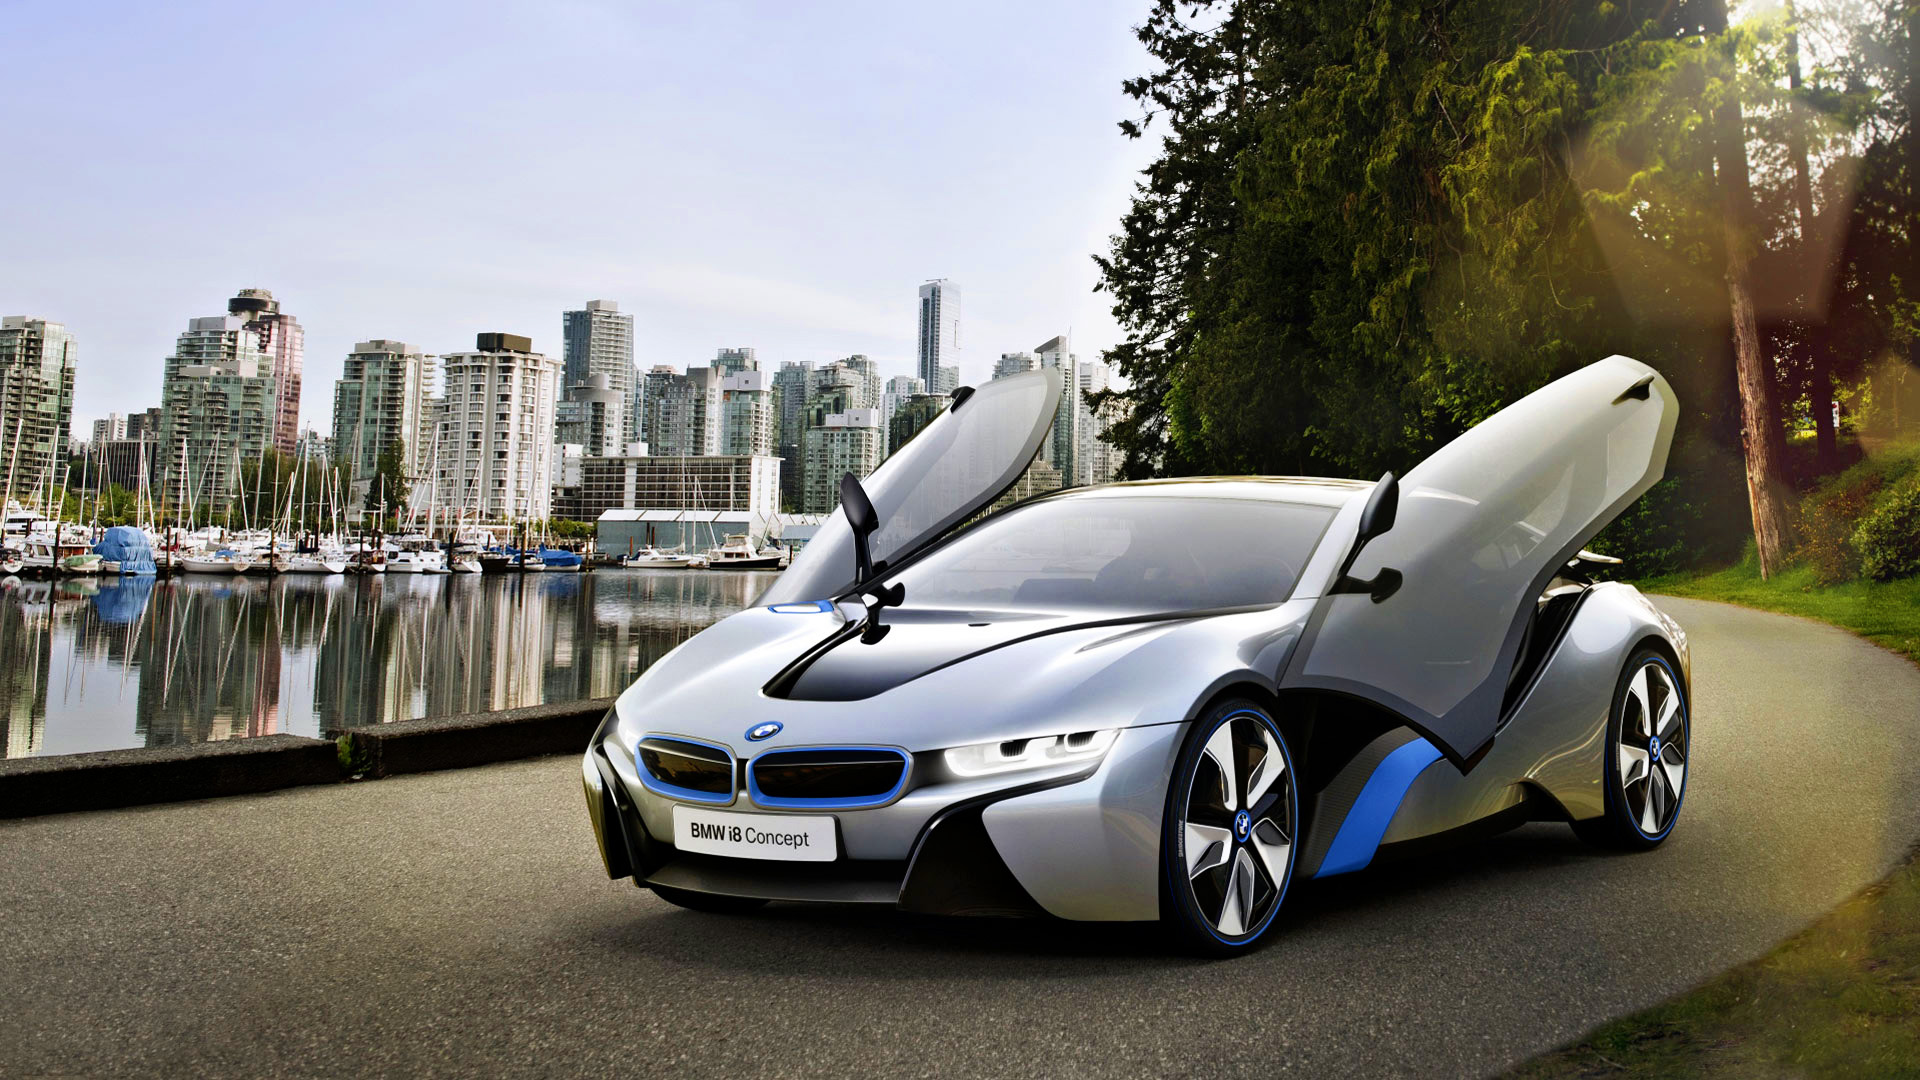 BMW i8 Wallpaper